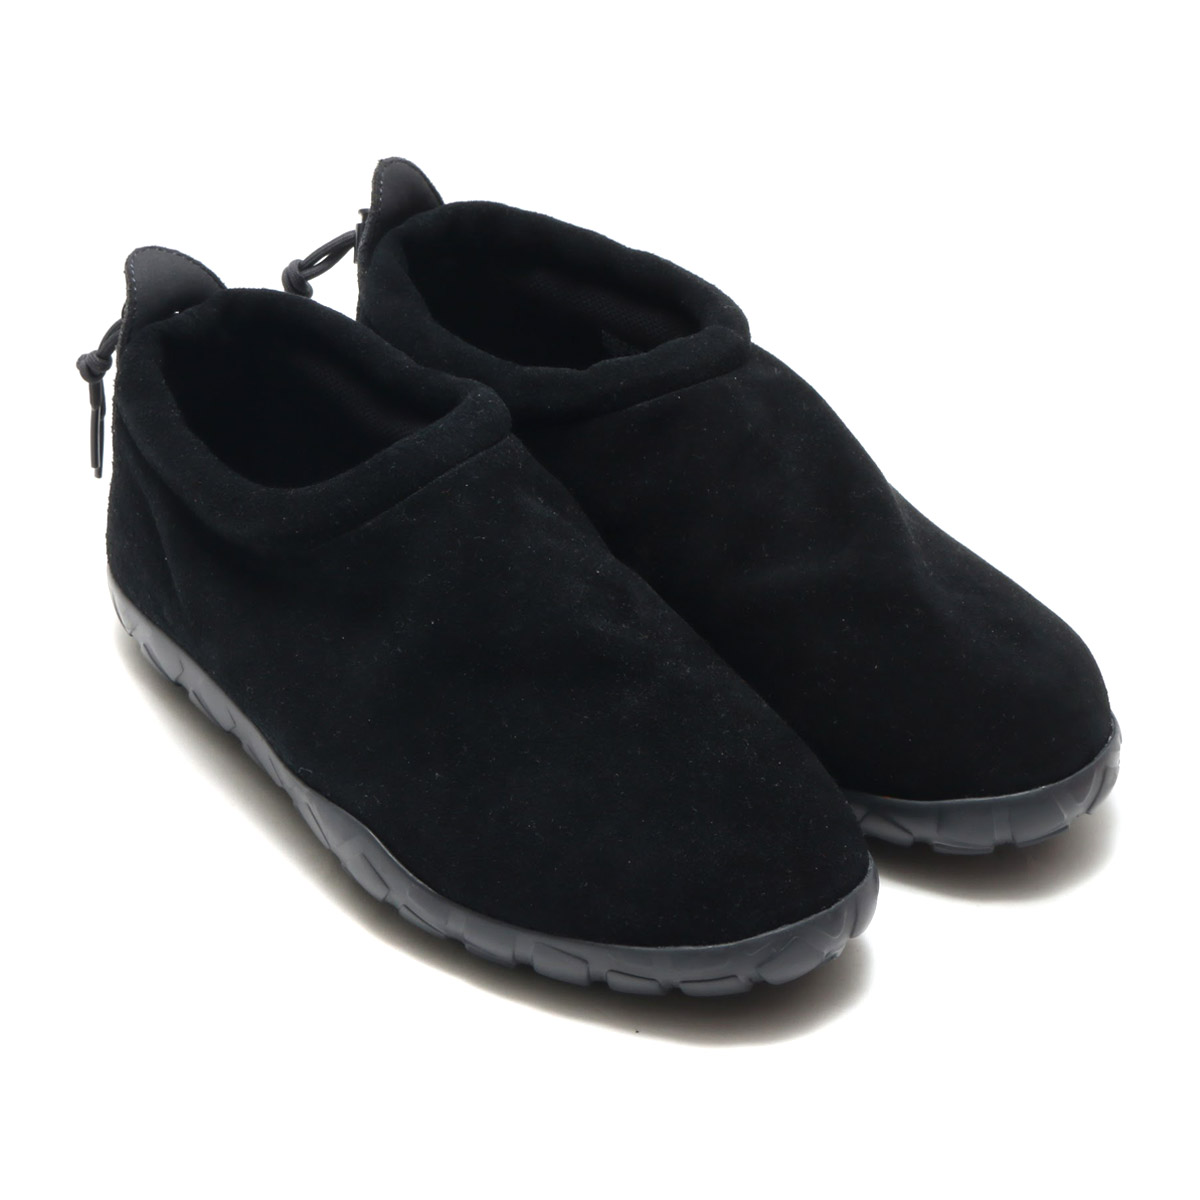 the latest 7d63d 1837e The appearance of the OG-like color where is good from AIR MOC ULTRA in  fall and winter. EASY ON EASY OFF model to match various styles.